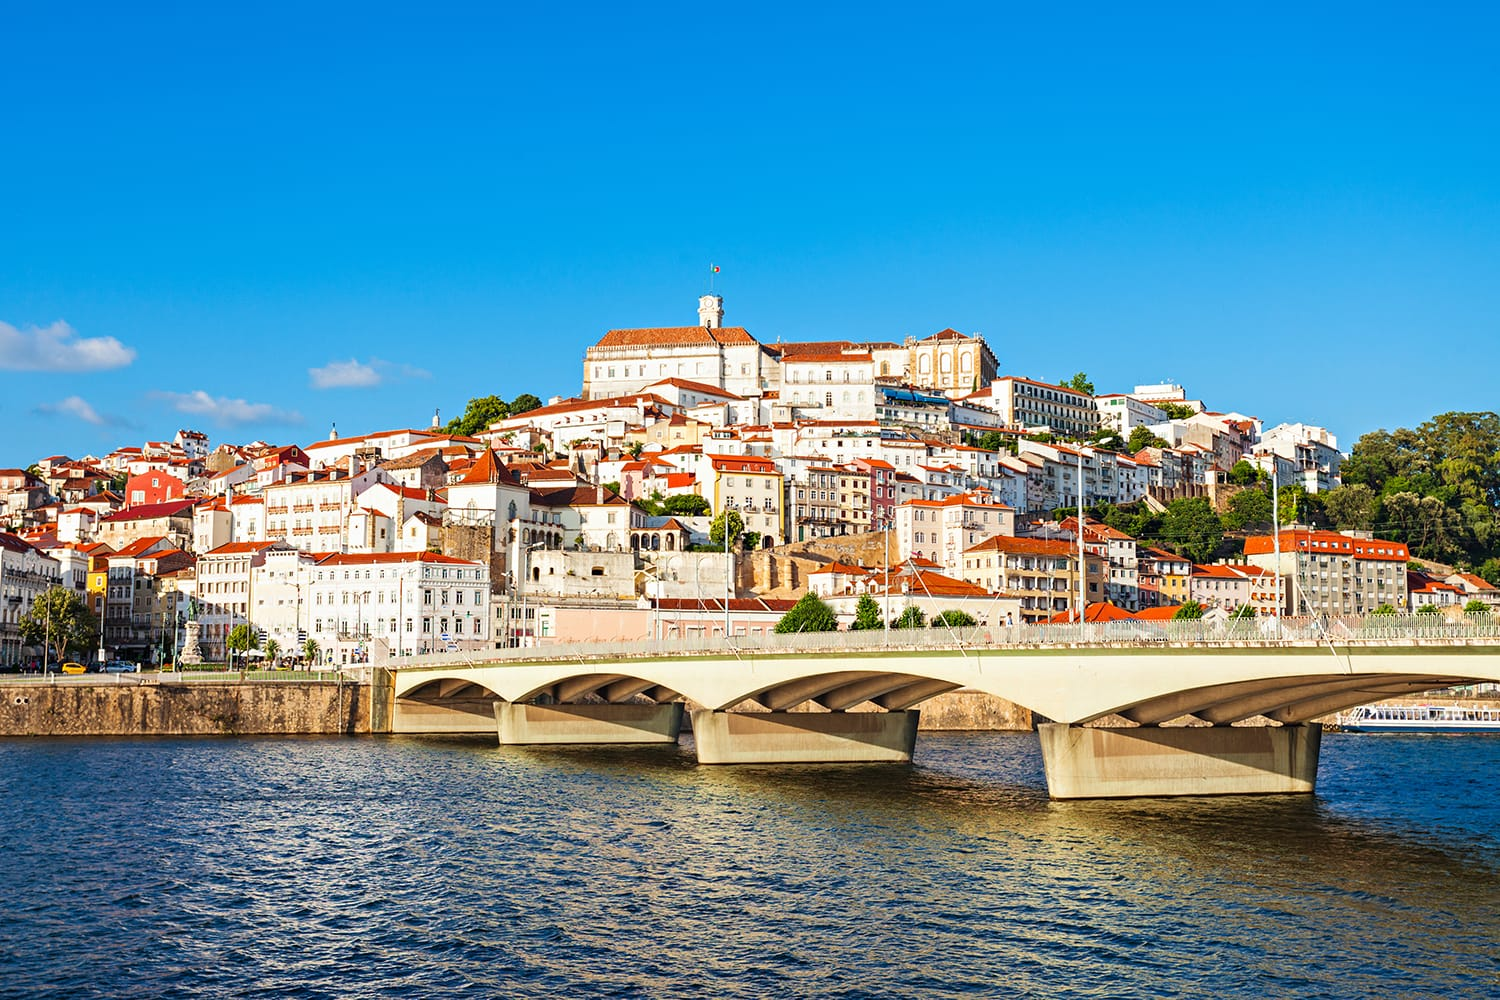 Skyline of Coimbra, Portugal